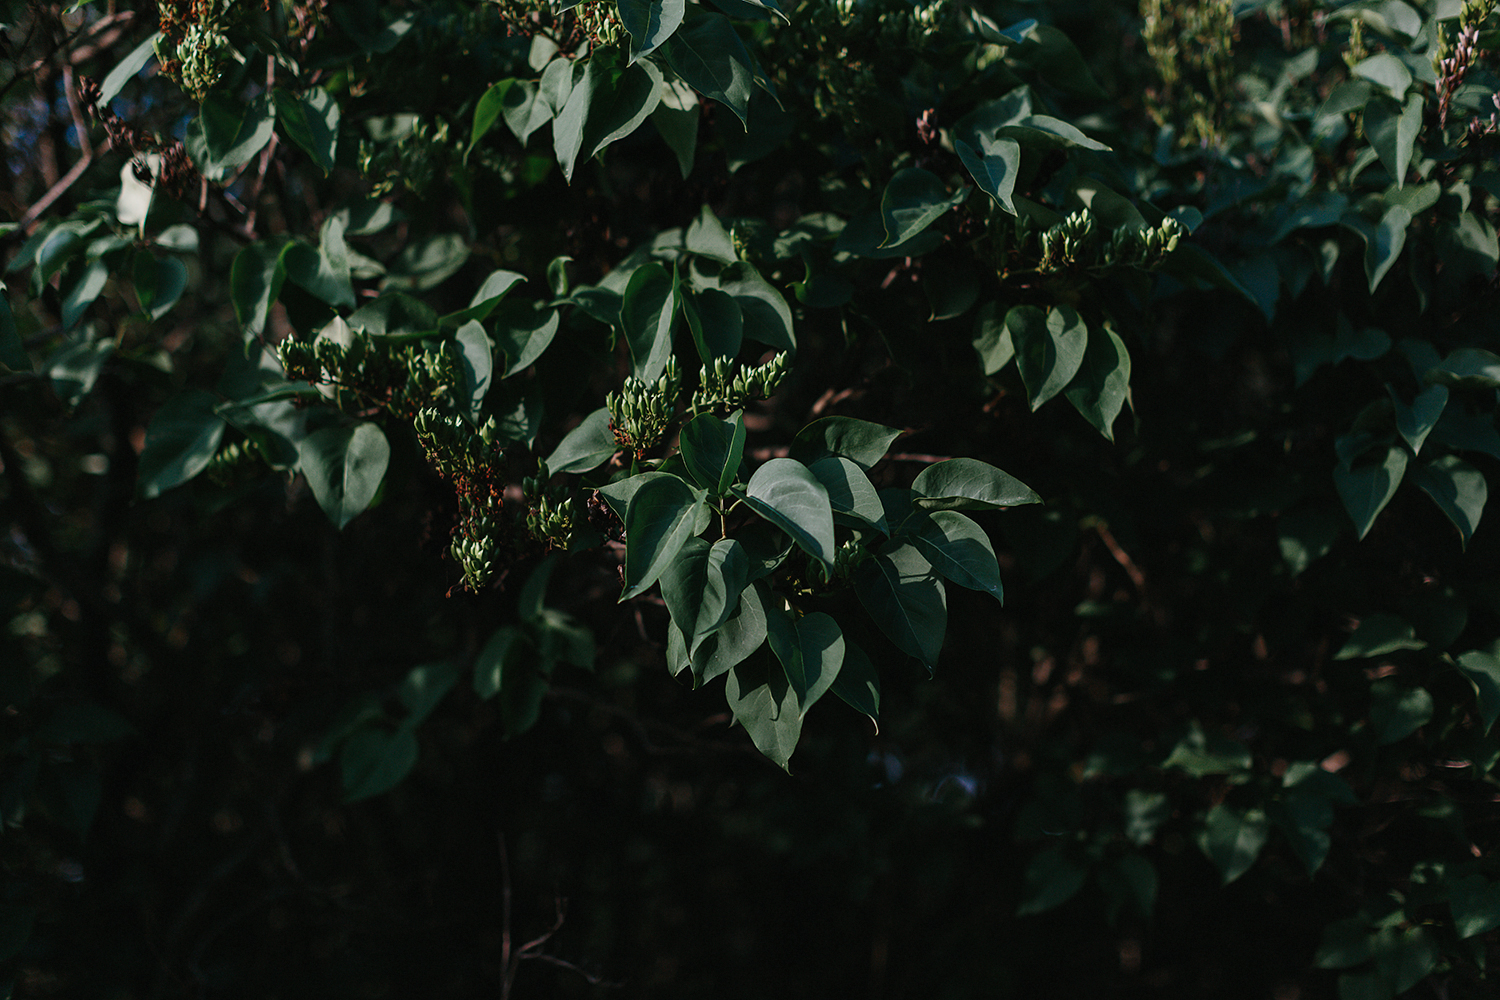 cambium-farms-wedding-ryanne-hollies-photography-gay-wedding-lgbtq-trendy-cool-badass-junebug-weddings-inspiration-cocktail-hour--candid-documentary-moments-farm-sunset-large-trees-leaves.jpg